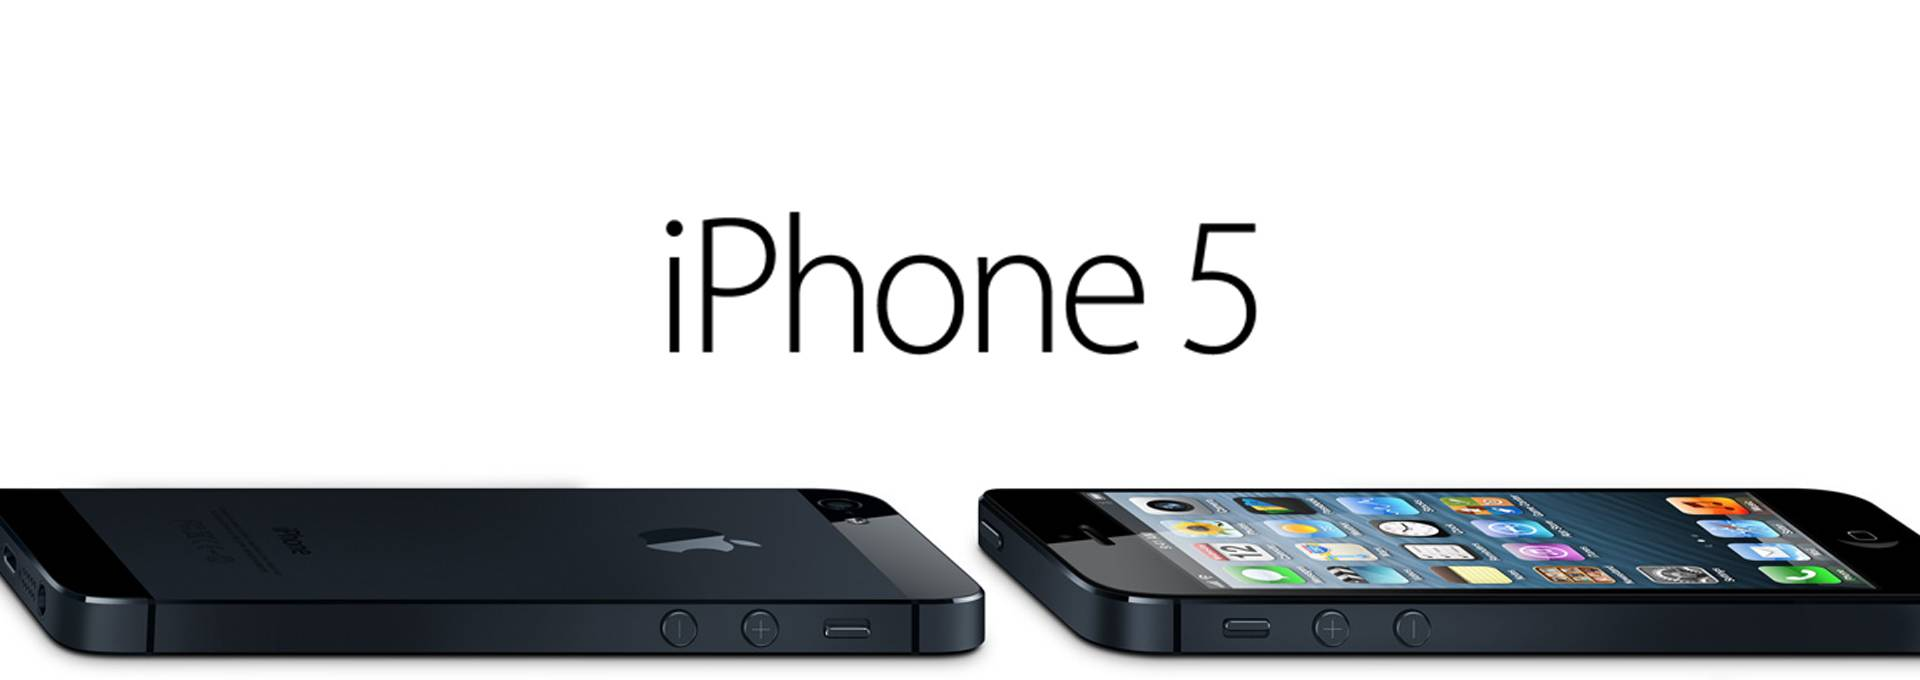 Toutes les annonces Apple du 12 septembre: iPhone 5, iTunes, iPods, iOS 6